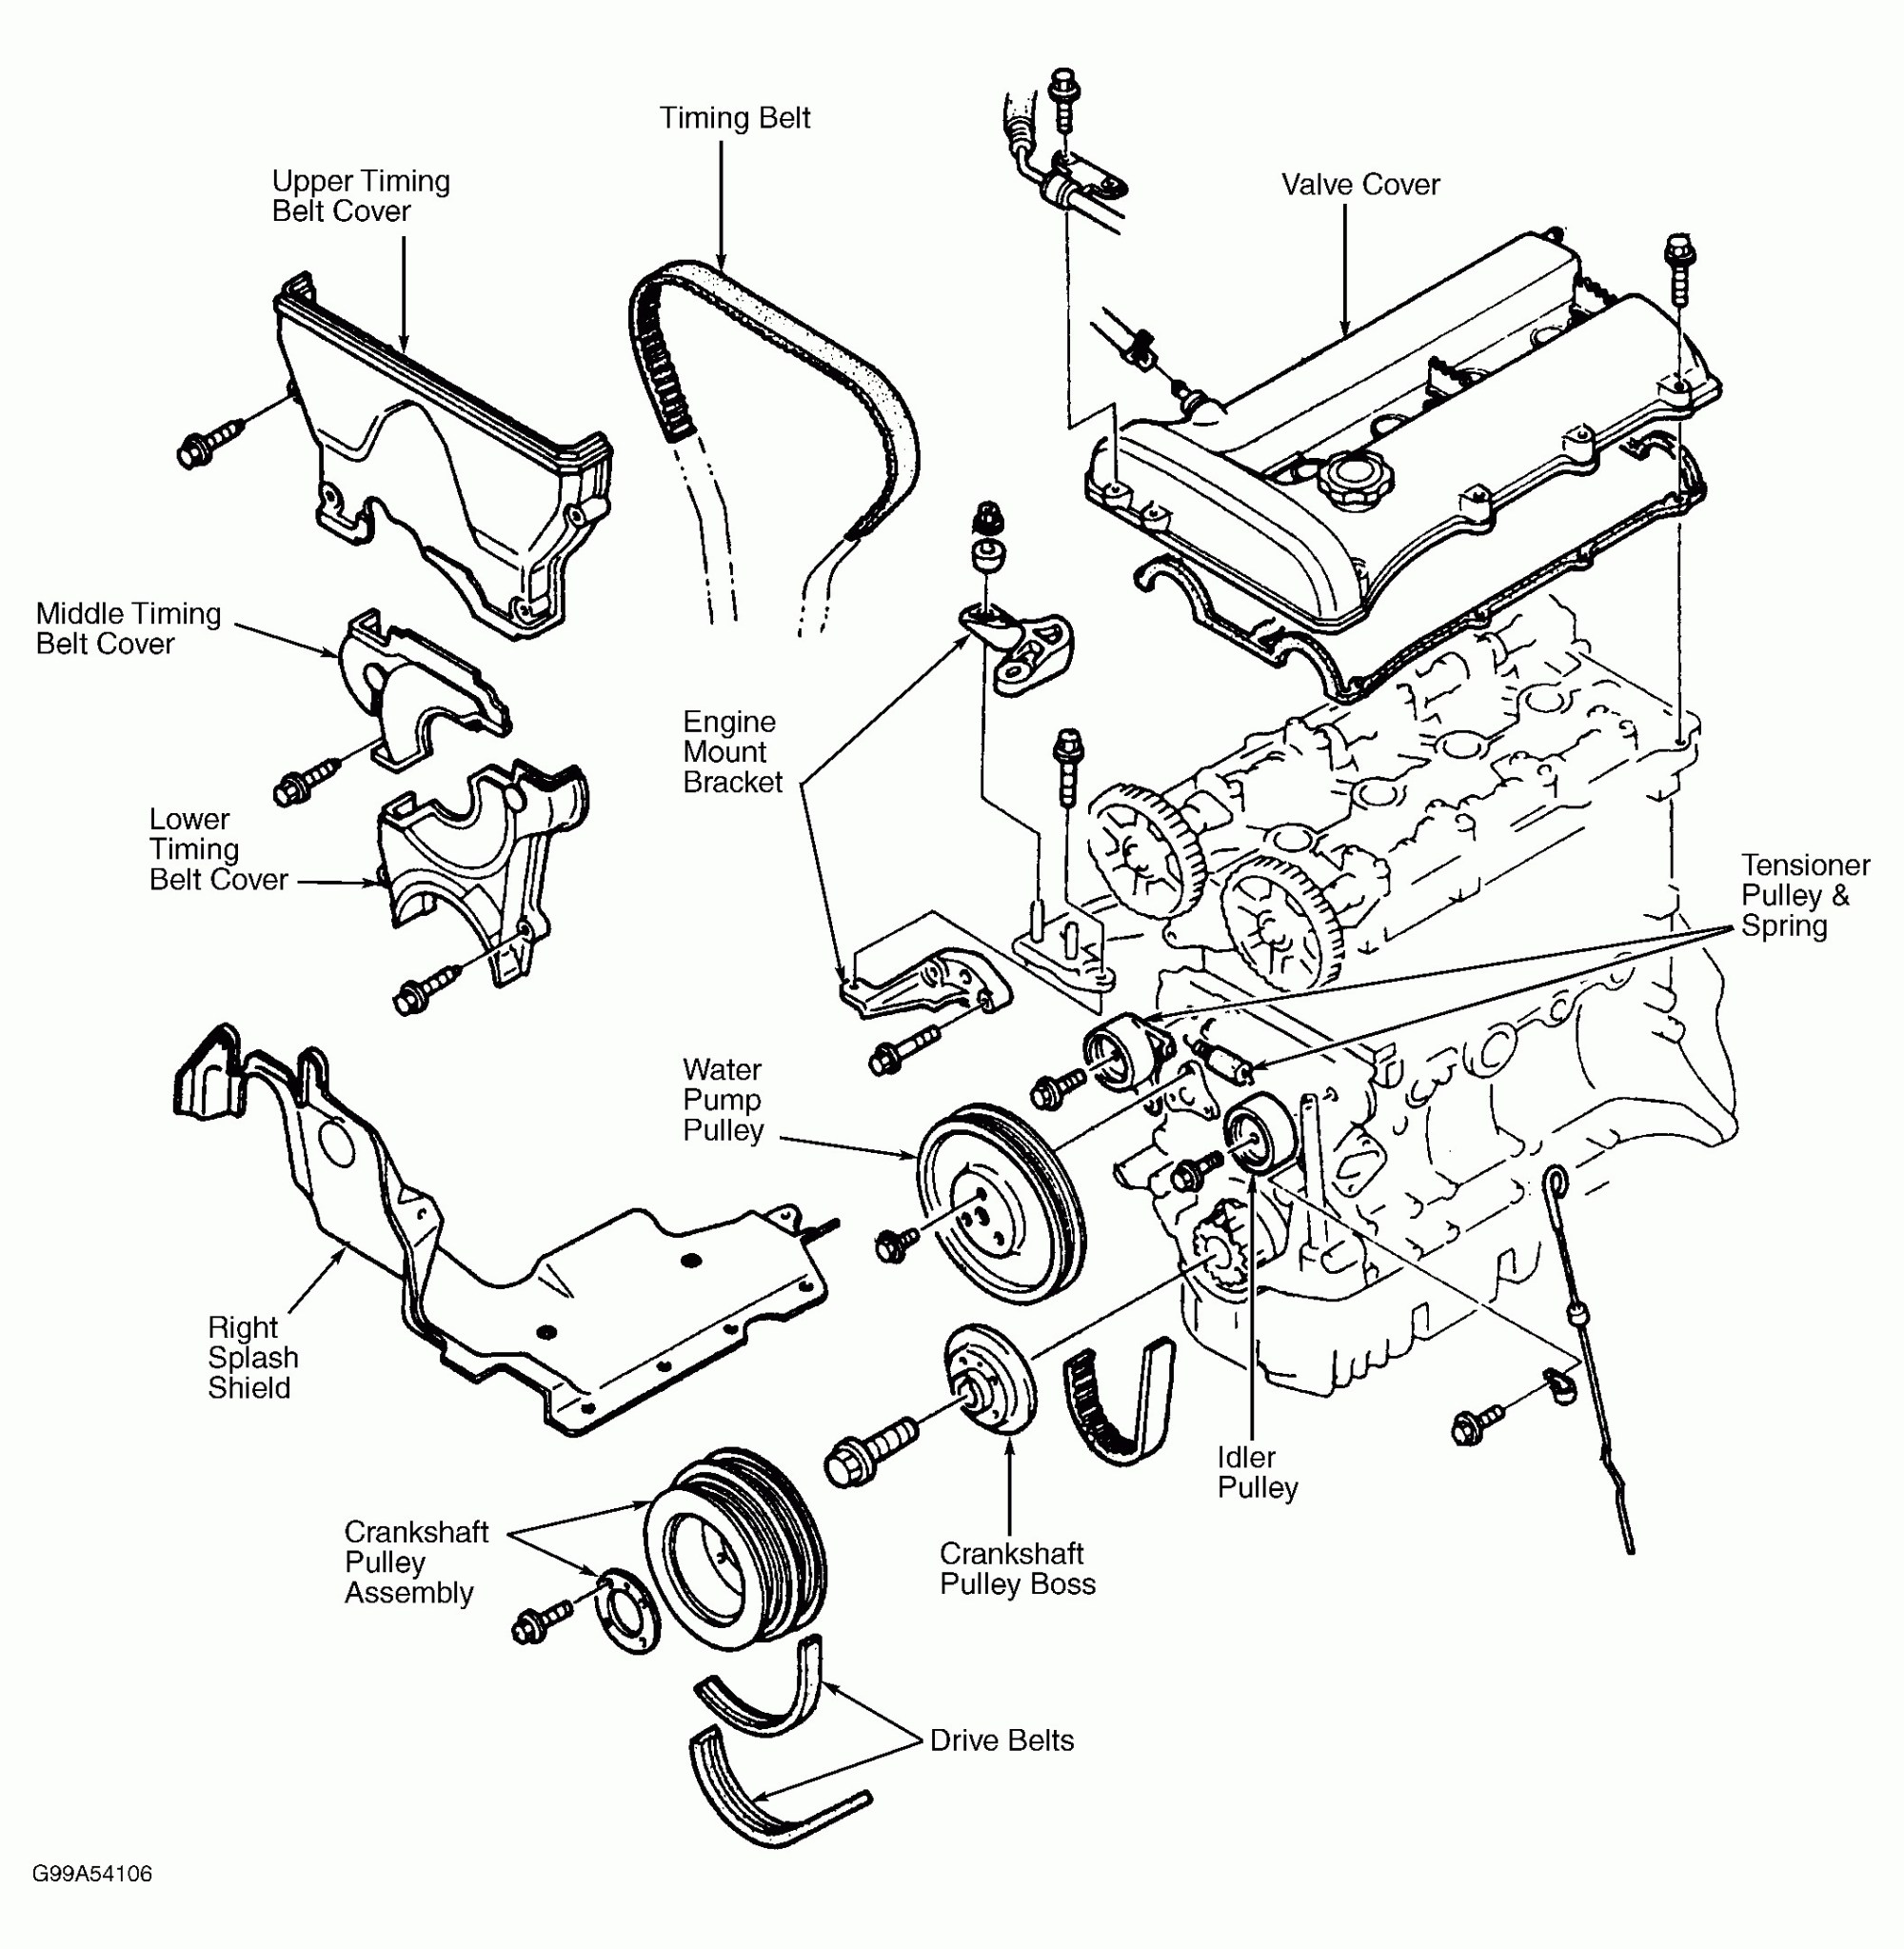 hight resolution of 88 mazda 323 wiring diagram opinions about wiring diagram u2022 1999 chevy monte carlo engine